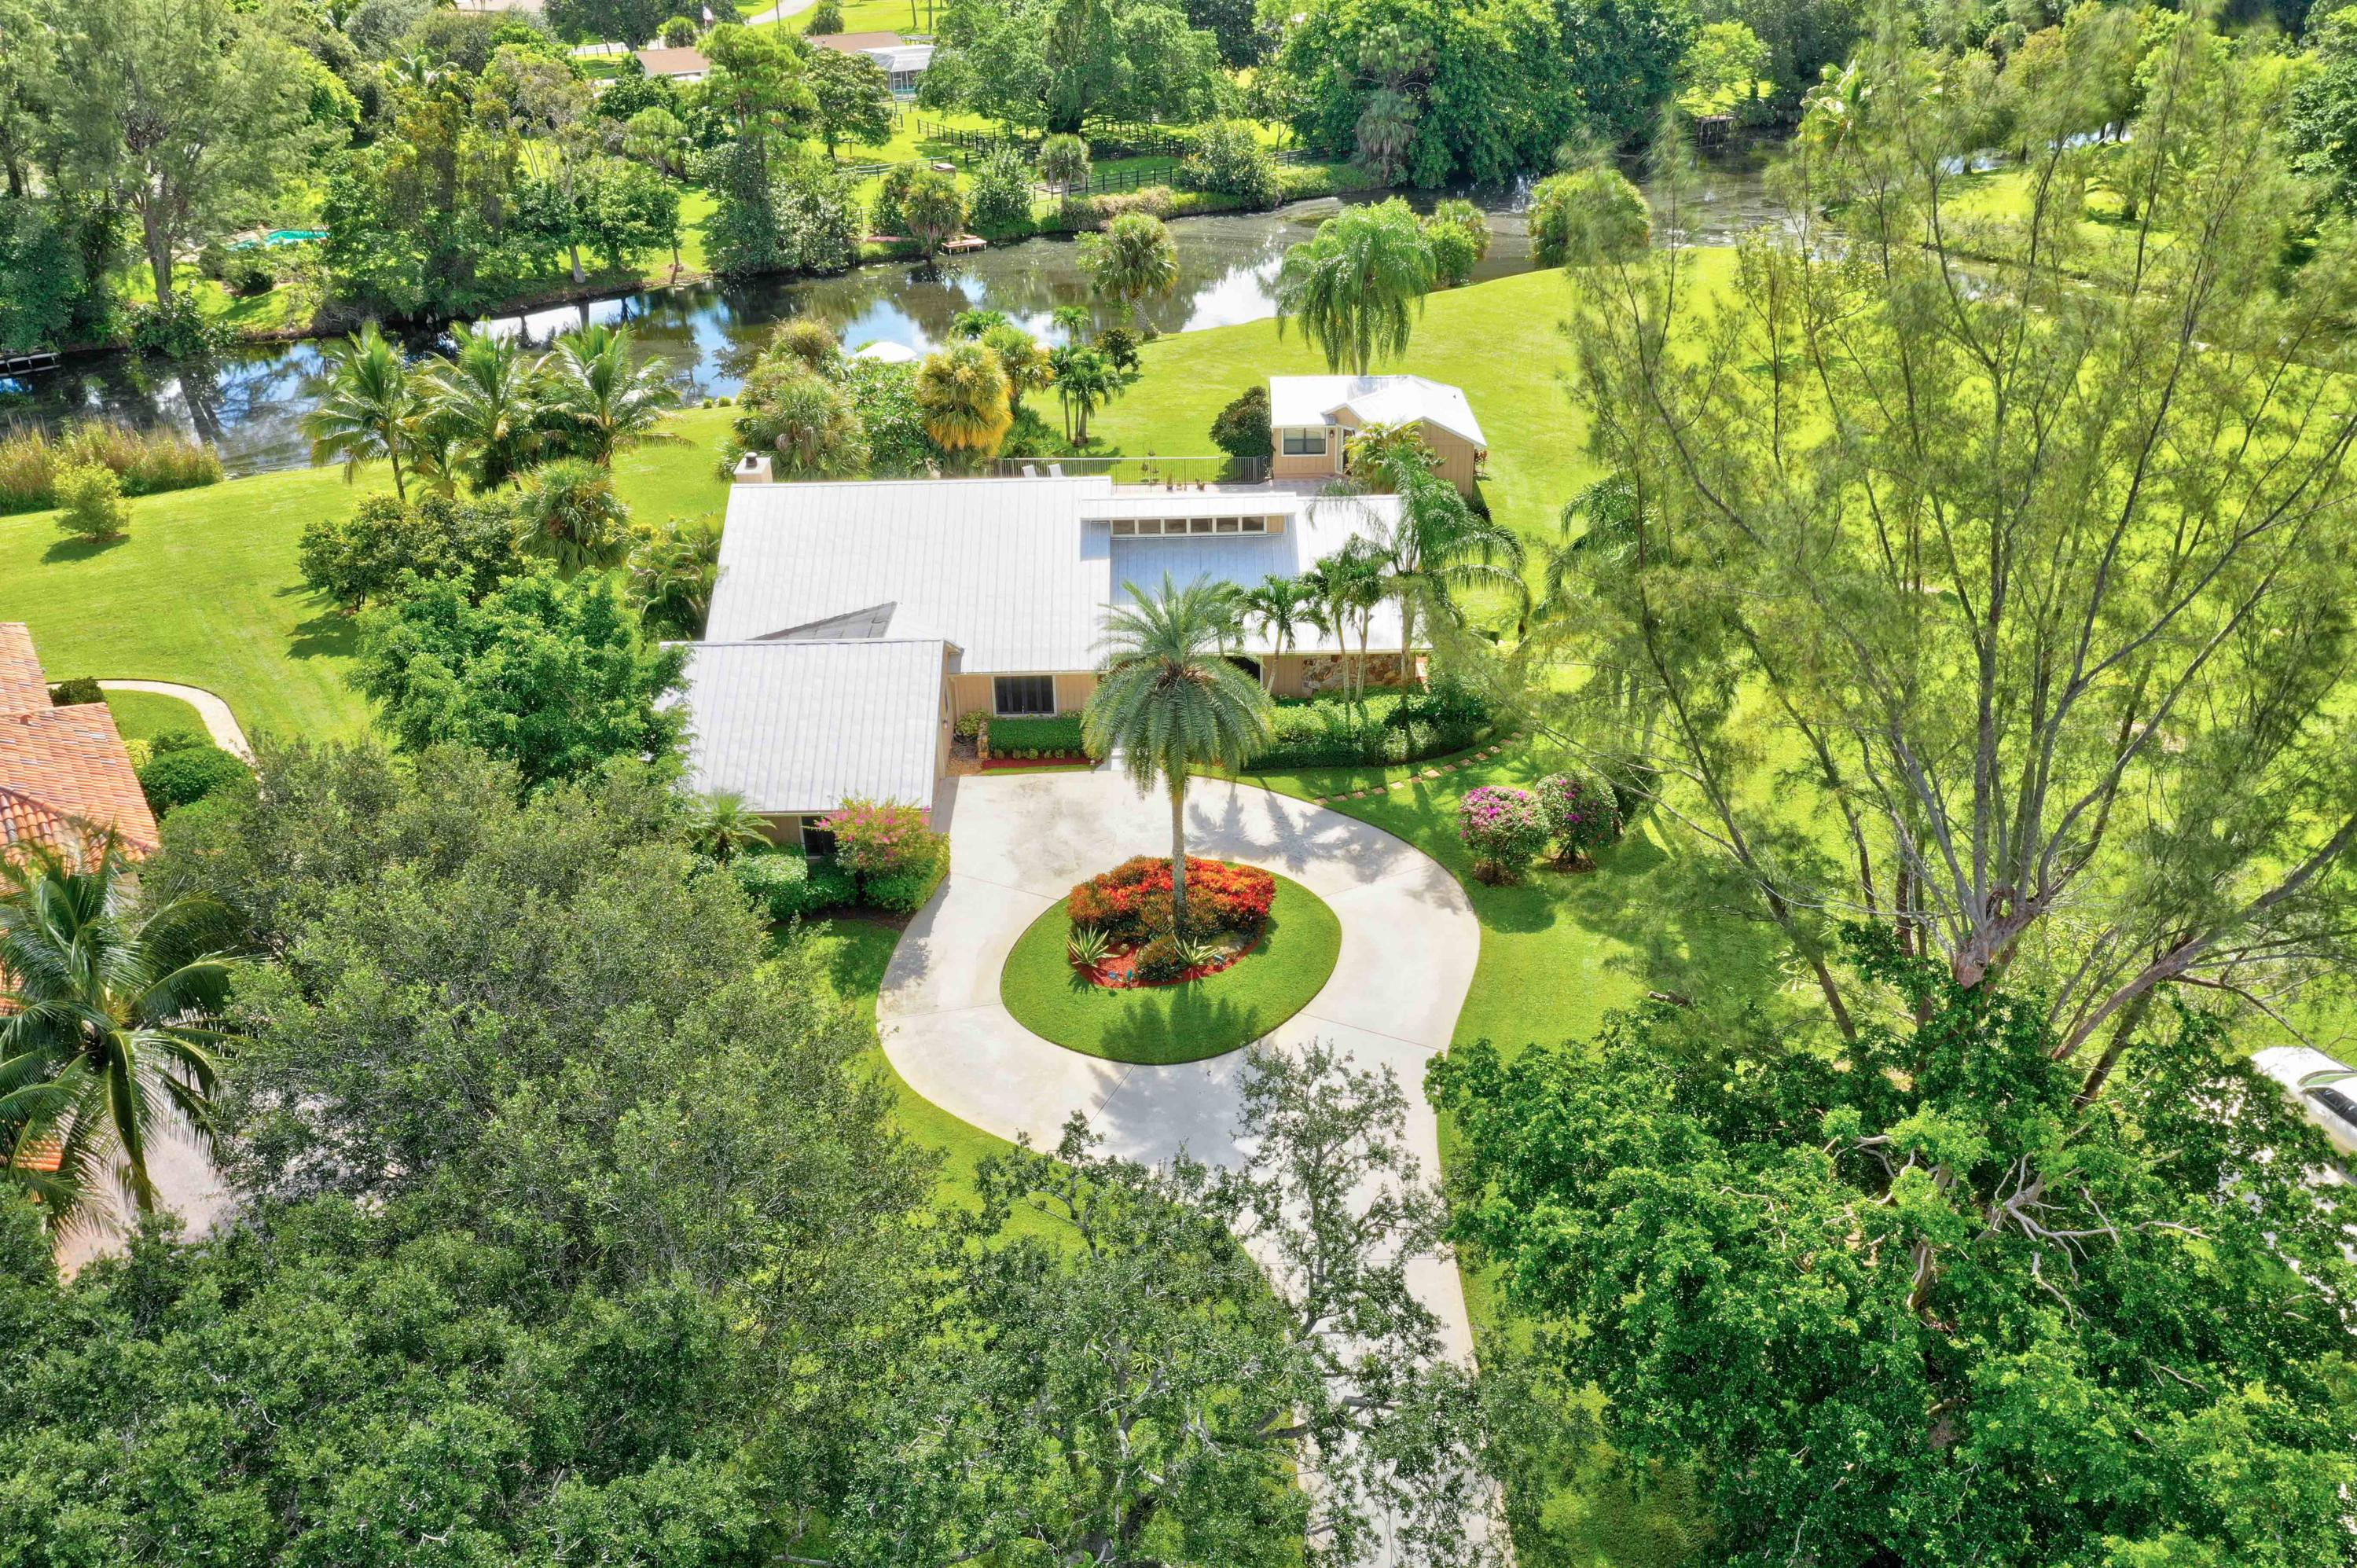 5561 Whirlaway Road, Palm Beach Gardens, Florida 33418, 4 Bedrooms Bedrooms, ,3.1 BathroomsBathrooms,Single Family,For Sale,Steeplechase,Whirlaway,RX-10468267